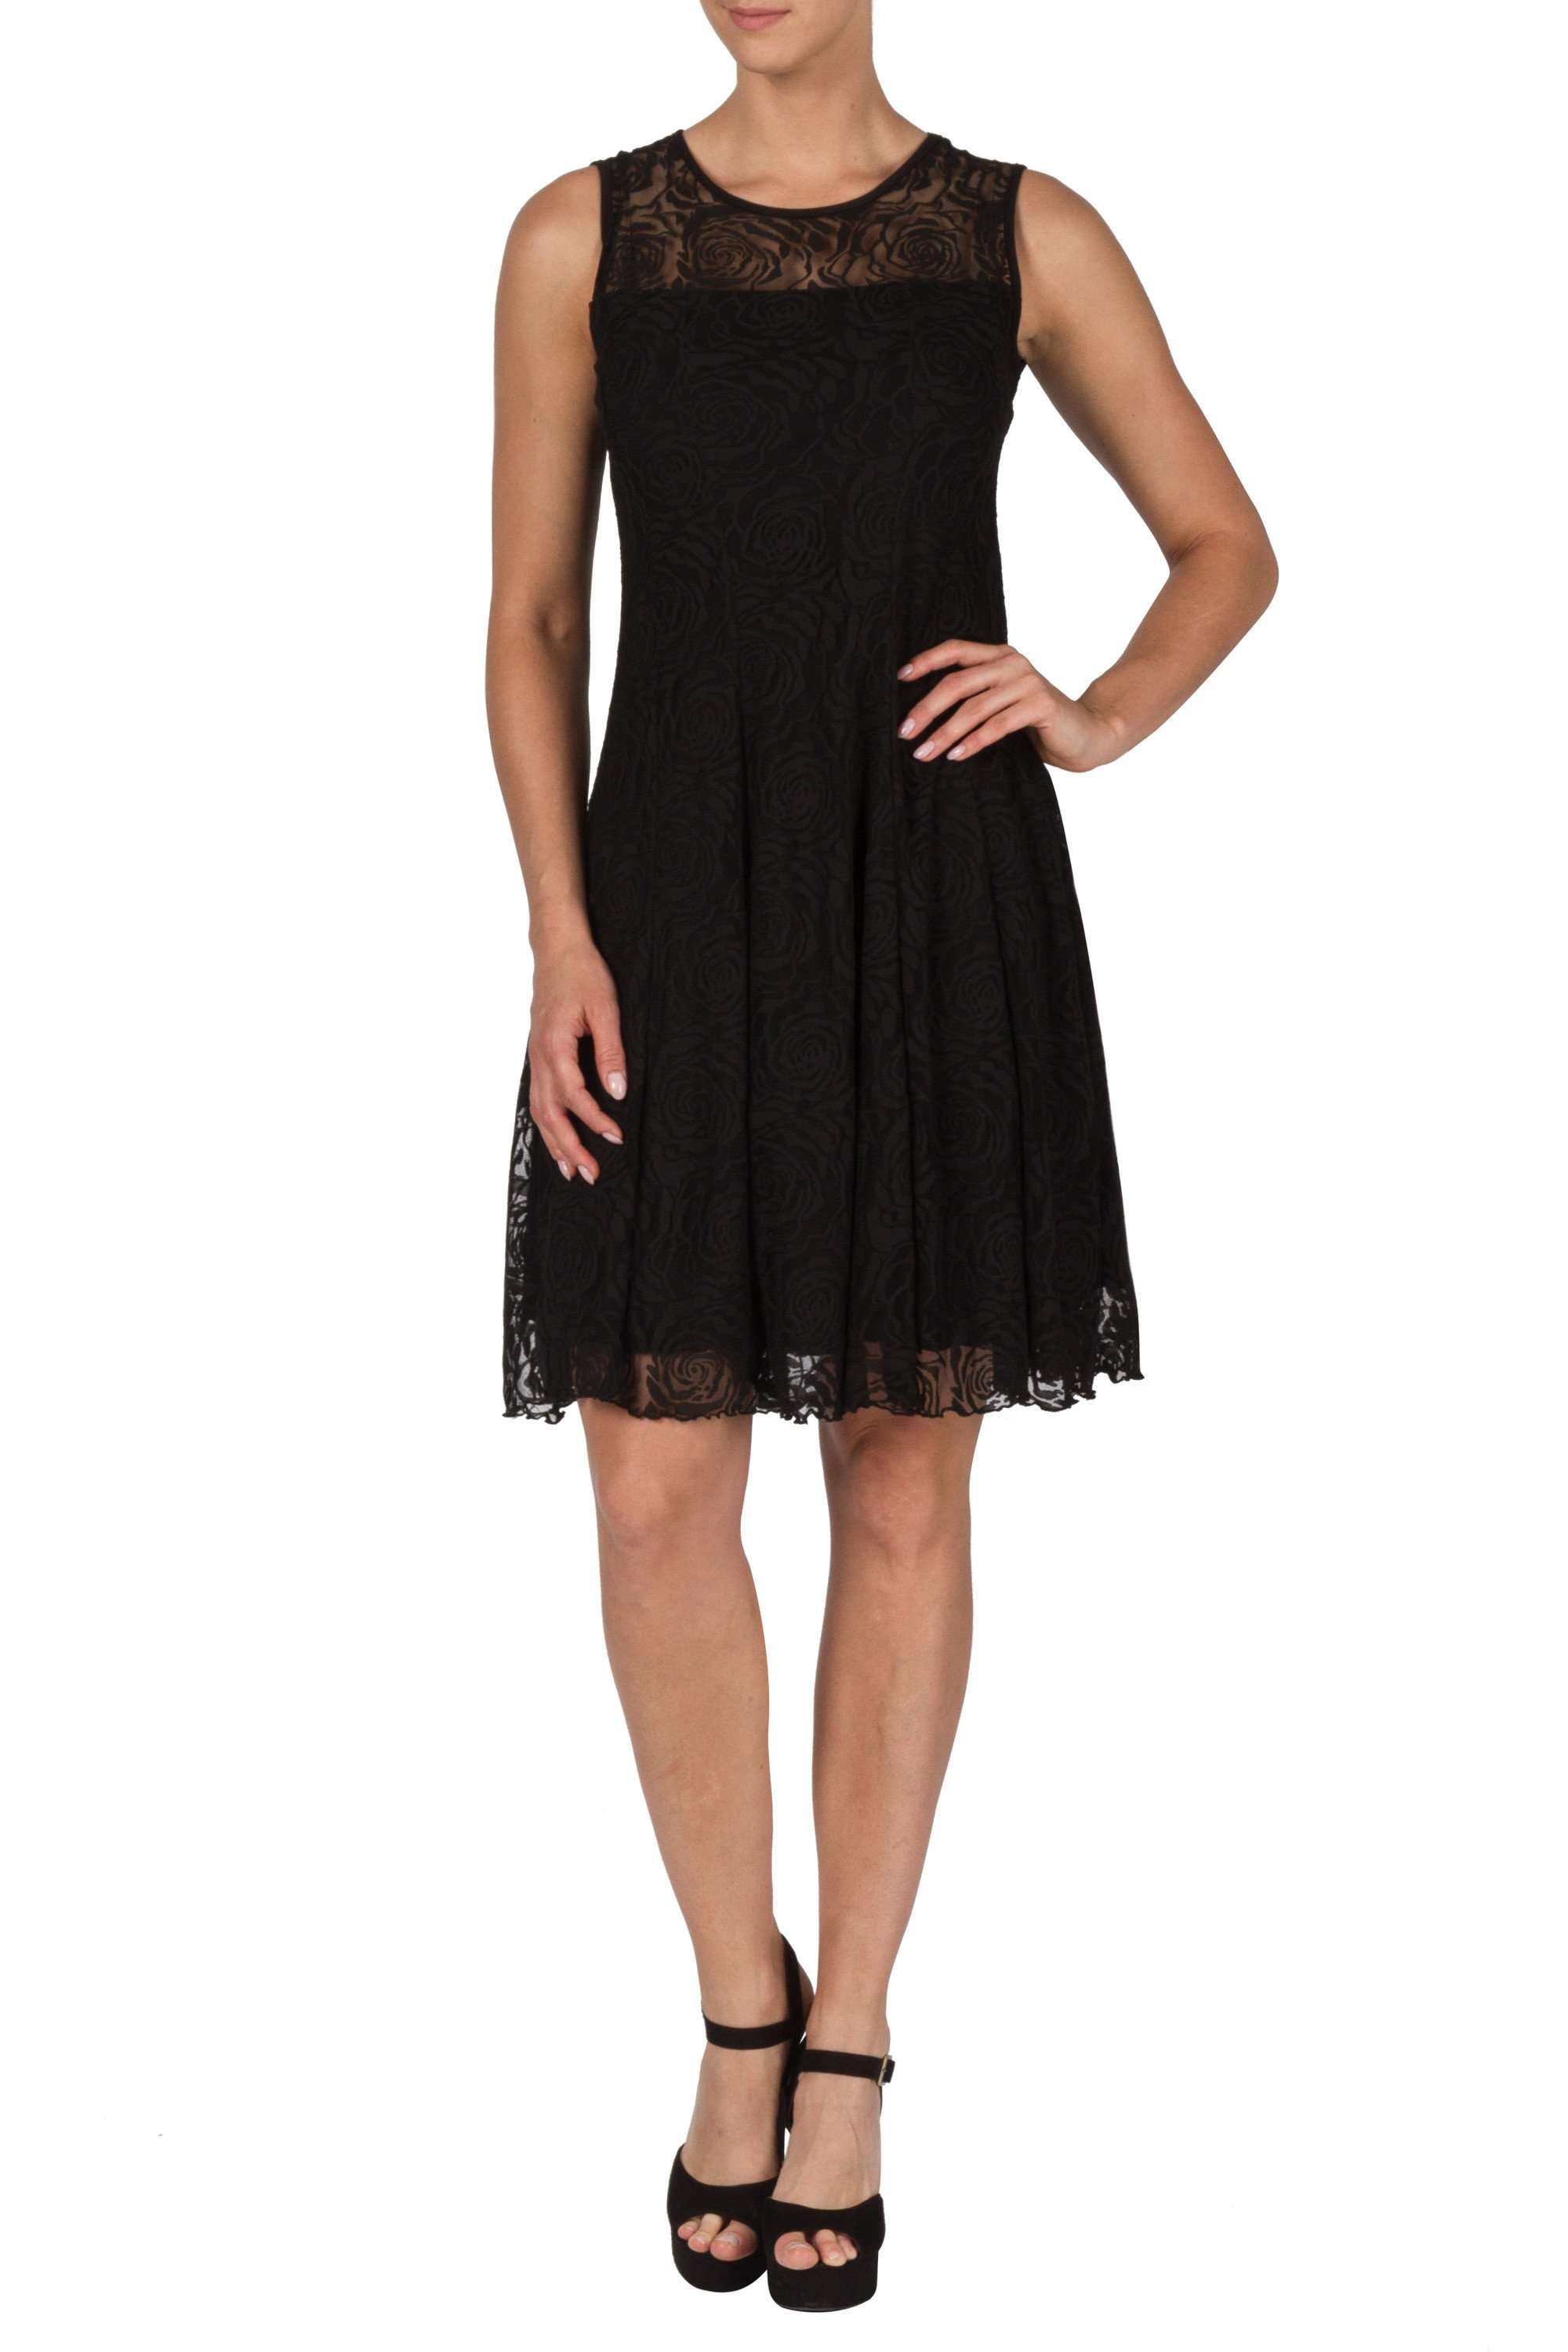 Women's Black Lace Dress-Made In Canada-Shop Local - Yvonne Marie